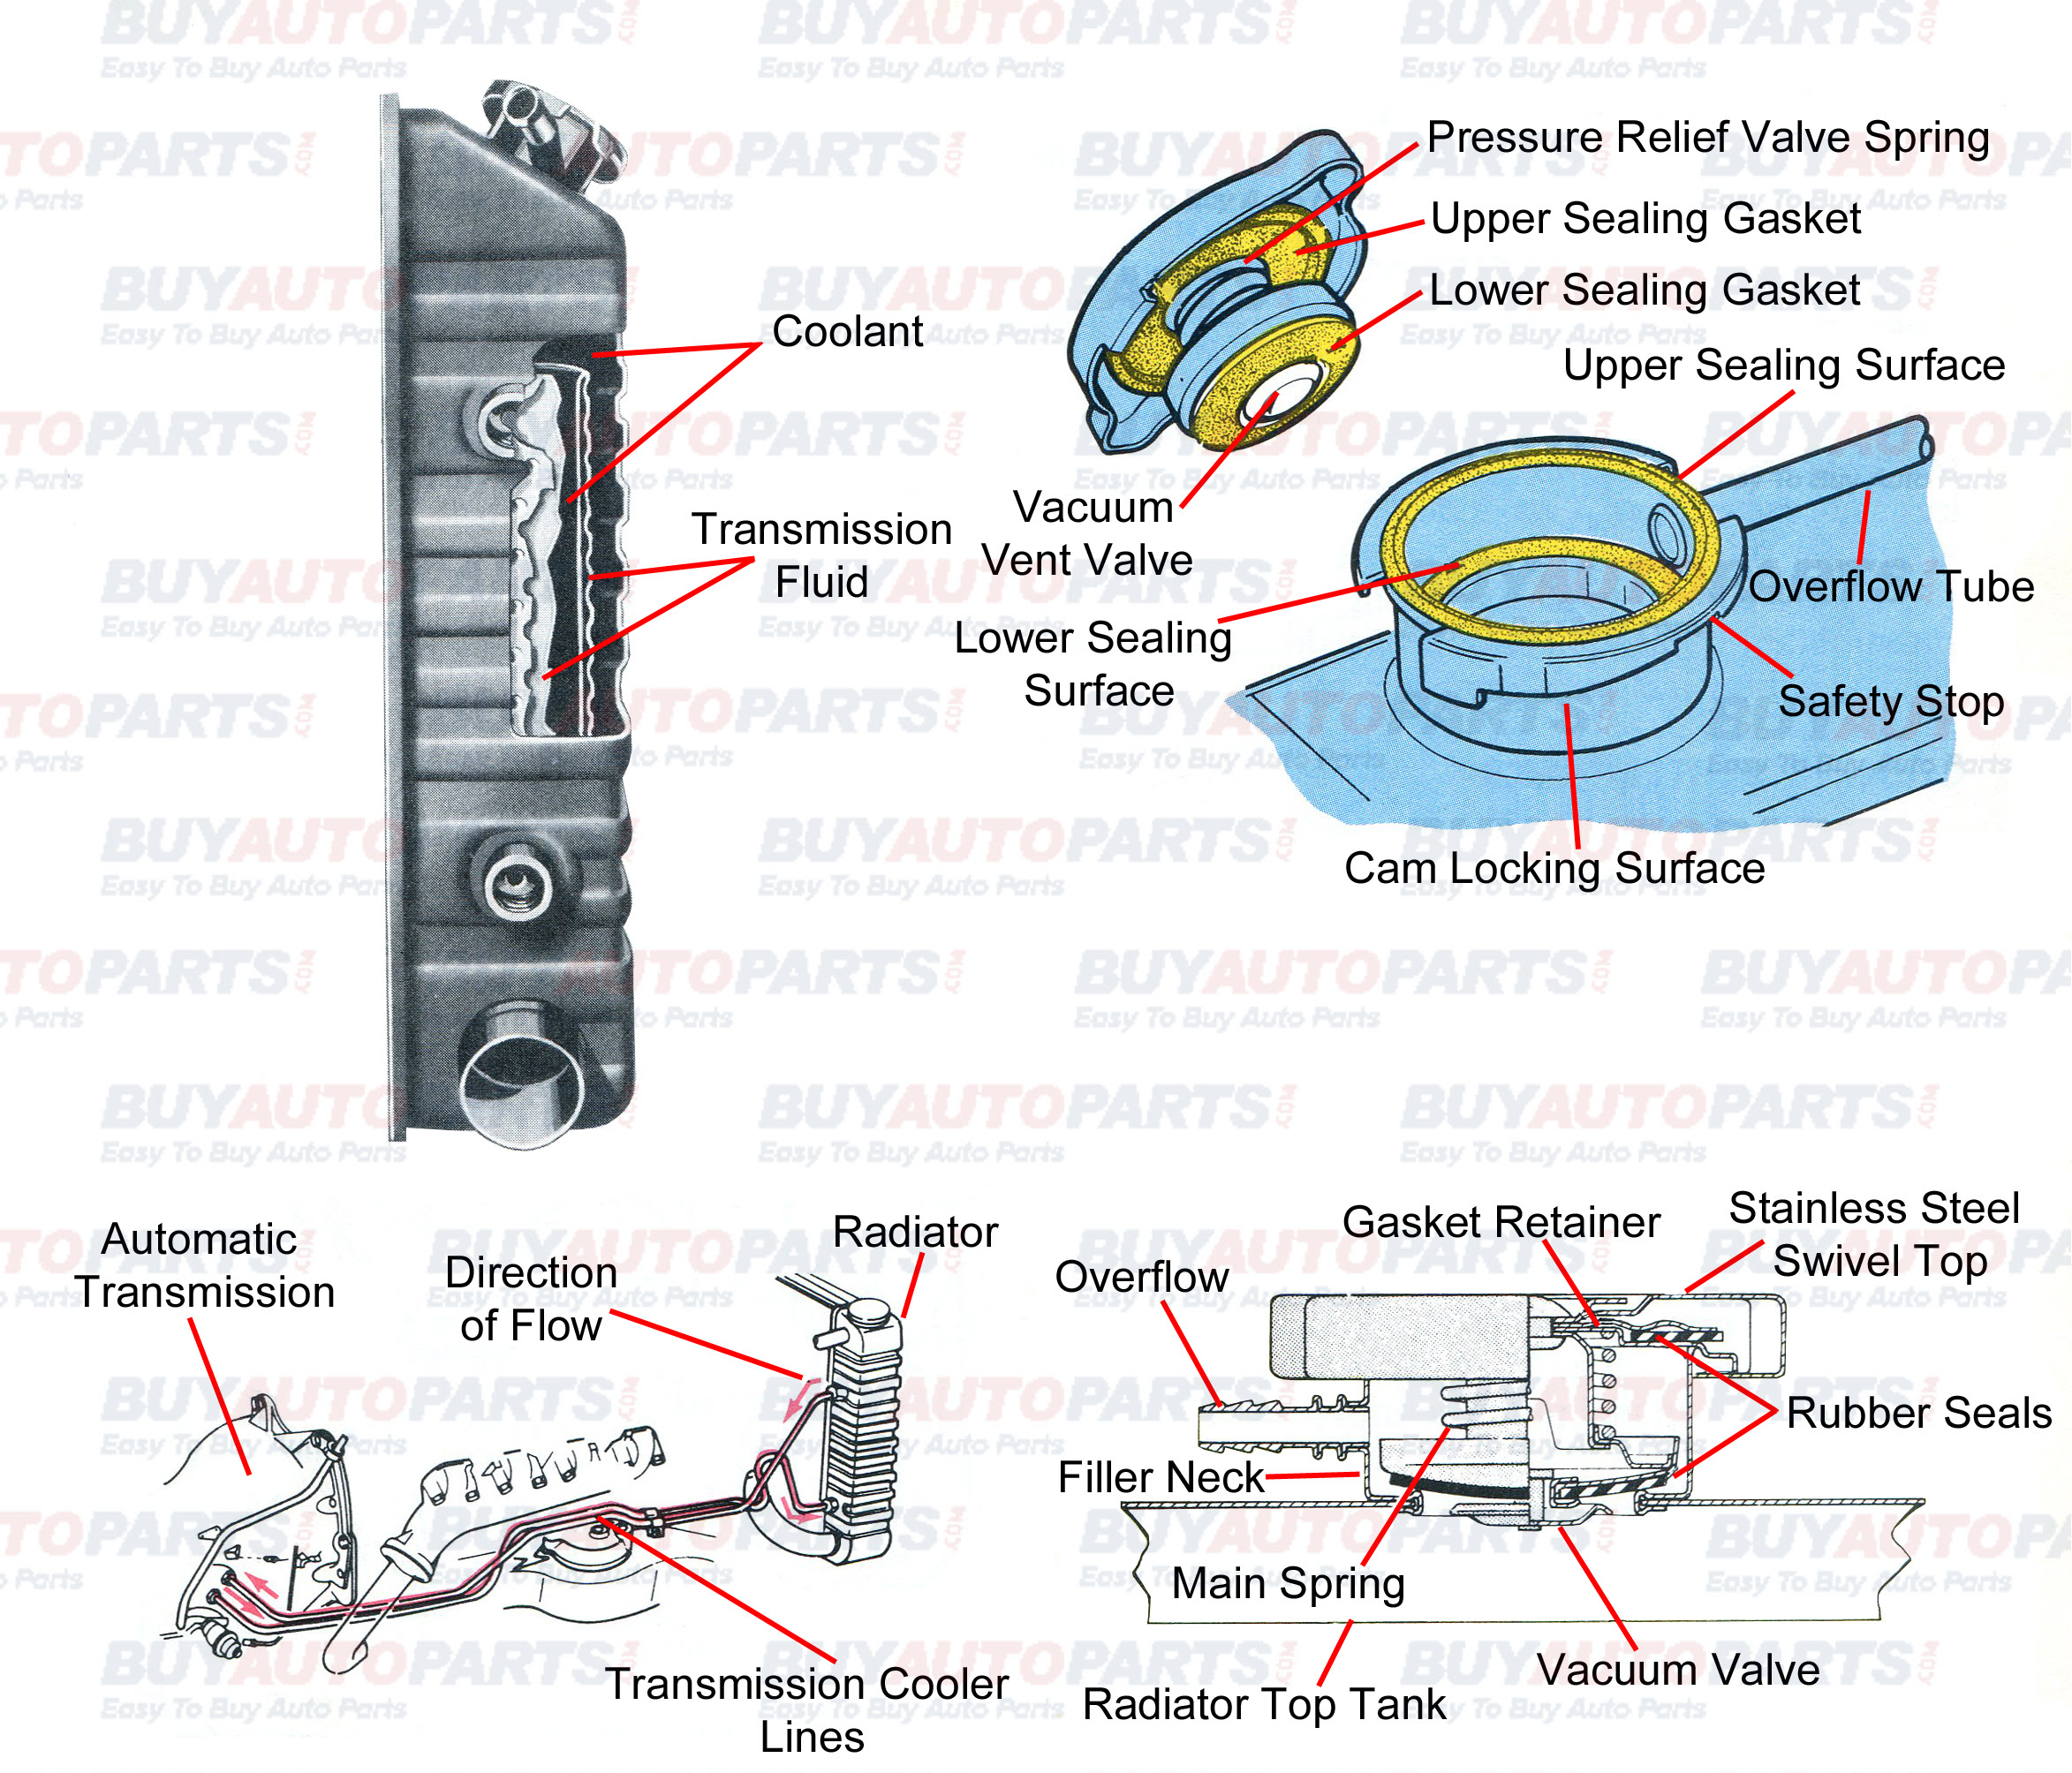 Wiring Diagram  10 2000 Chevy Cavalier Radiator Diagram